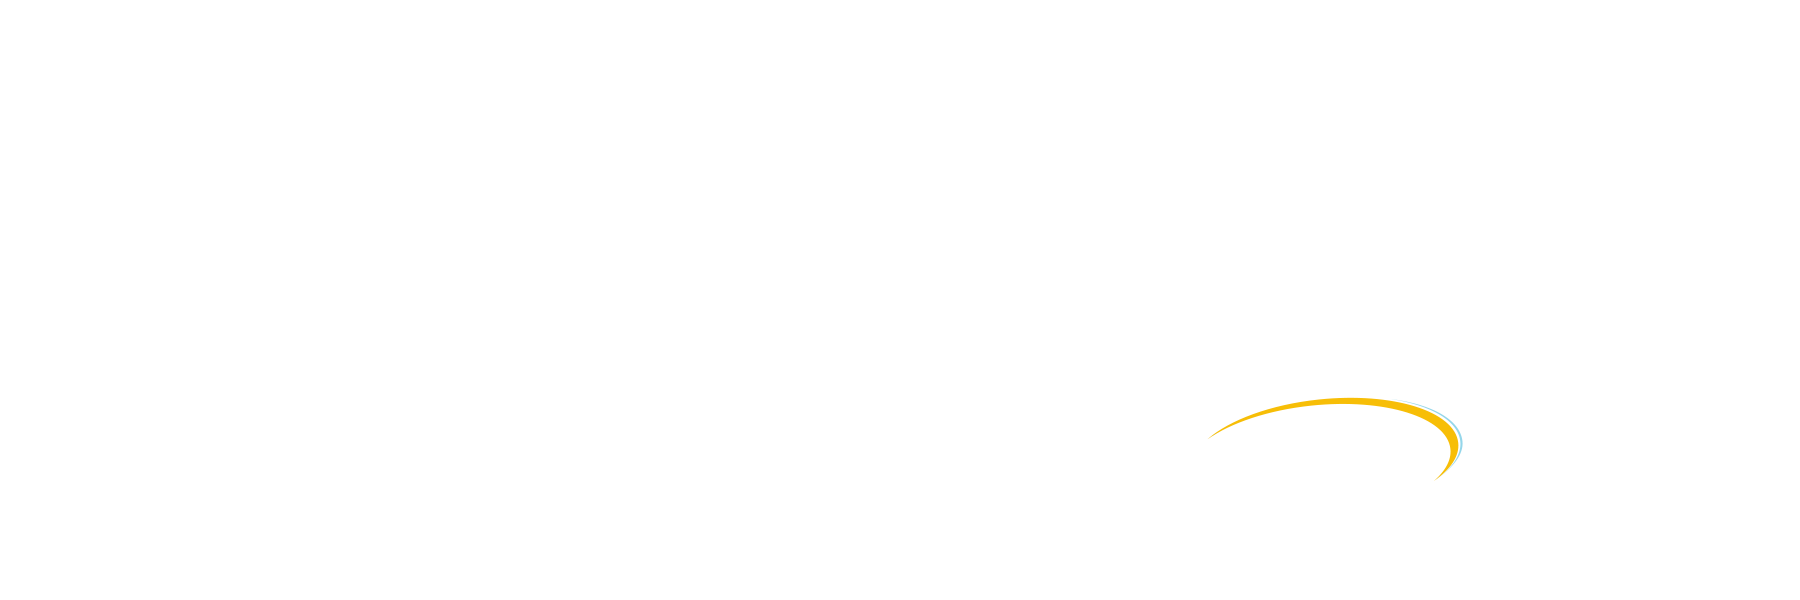 Pyramid Construction Services, Inc.